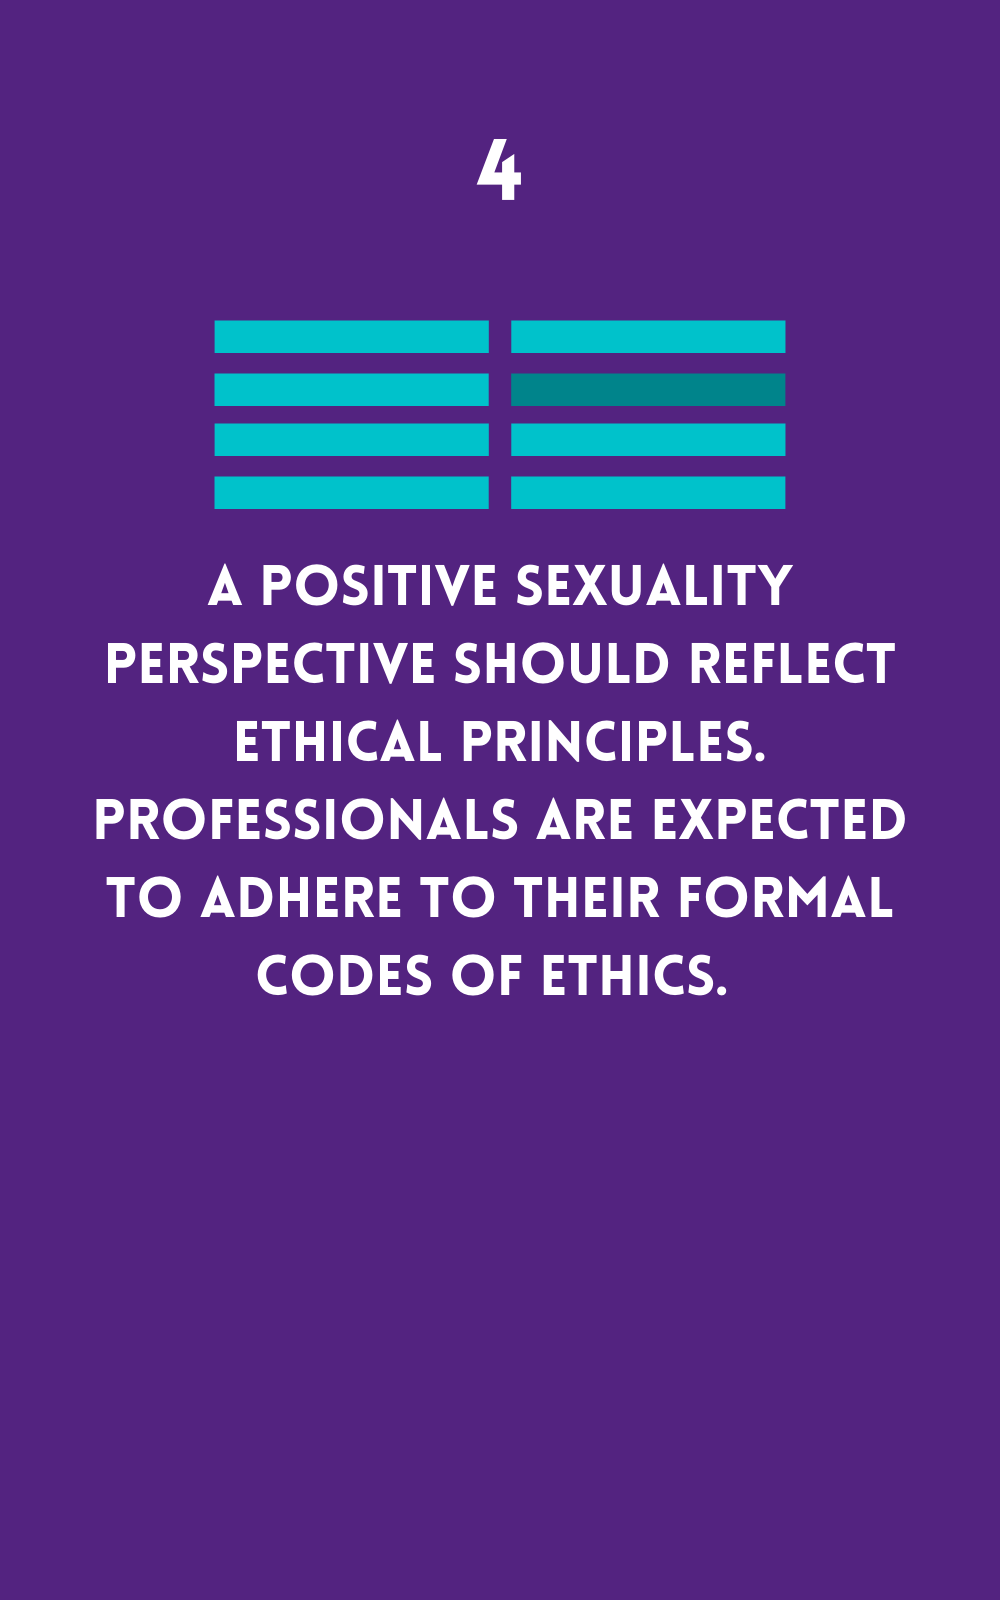 Positive Sexuality should reflect ethical principles